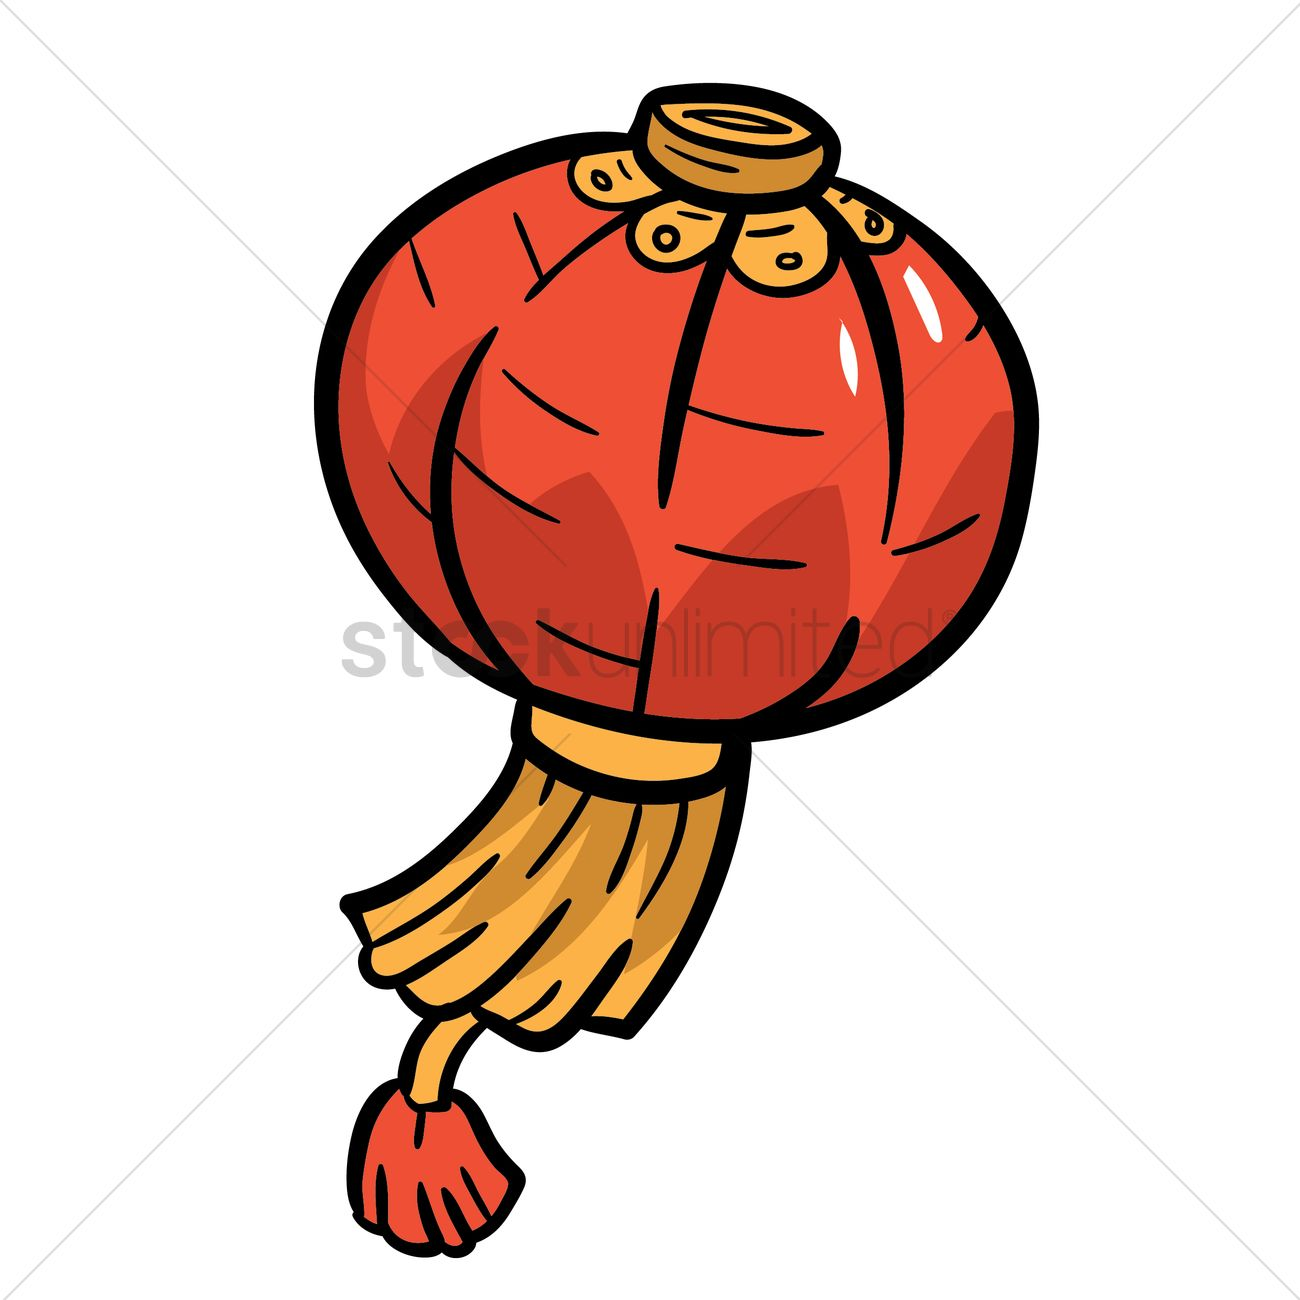 Chinese lantern Vector Image - 1972801   StockUnlimited Chinese Lantern Clipart